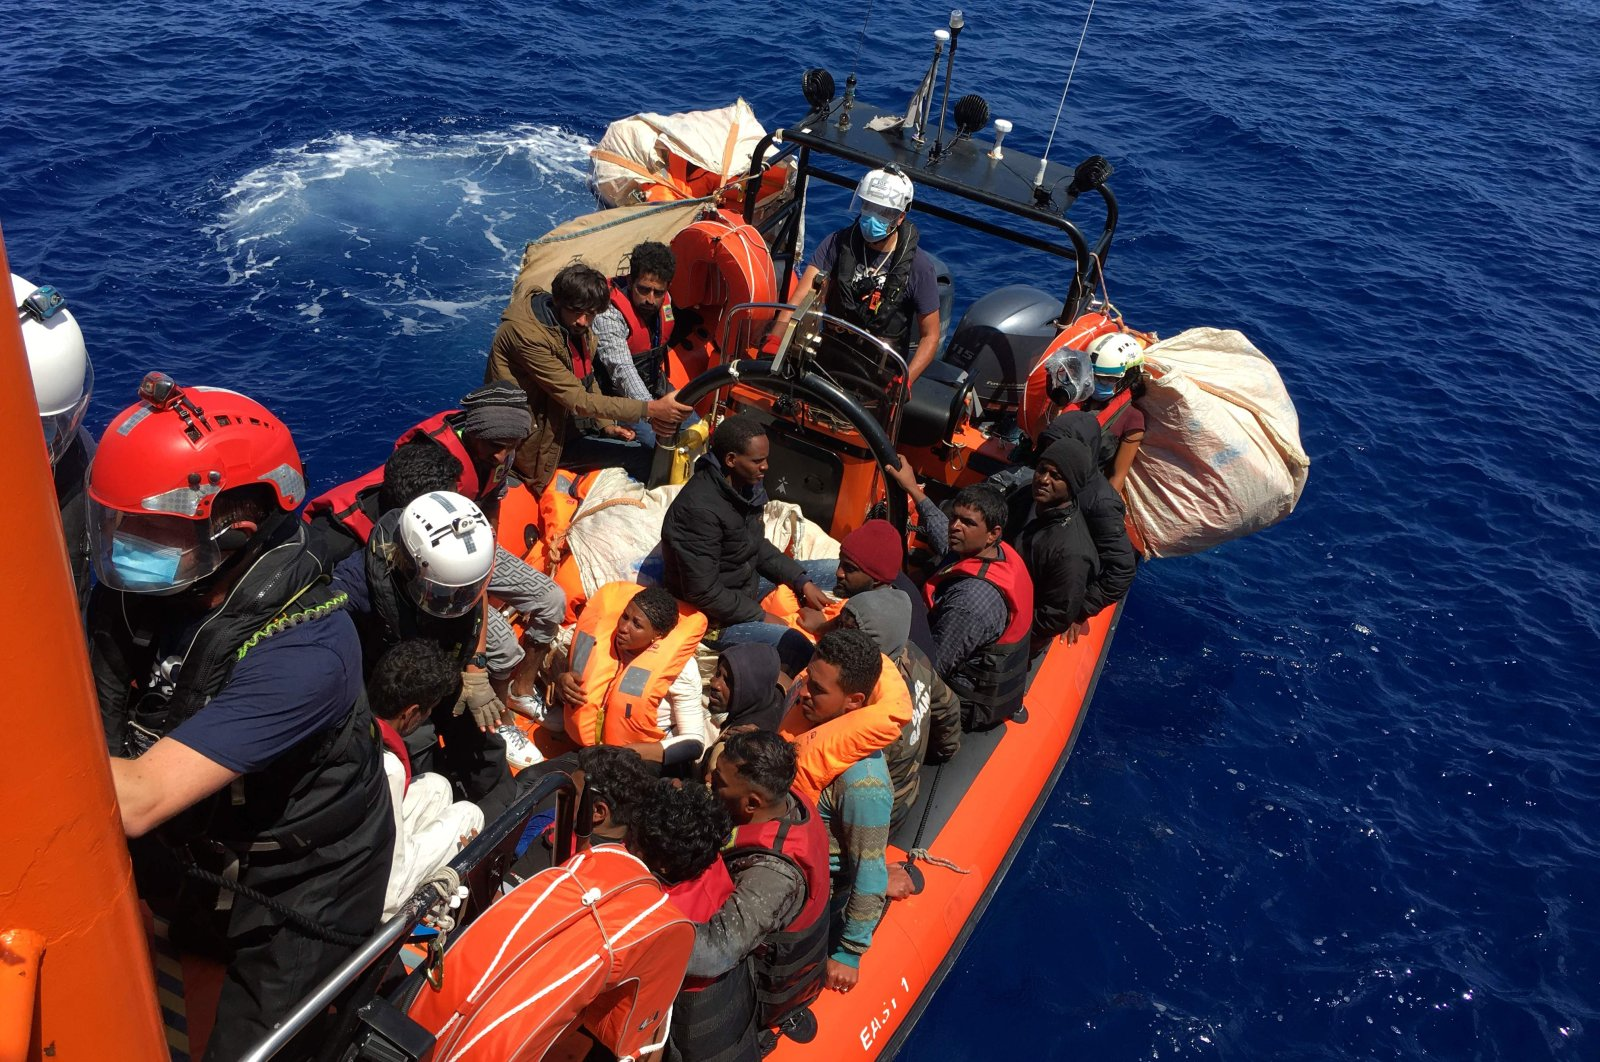 Some of the 51 migrants, who were drifting on a wood boat, are rescued by members of the French NGO SOS Mediterranee's boat Ocean Viking, off the coast of Lampedusa island, June 25, 2020. (AFP Photo)